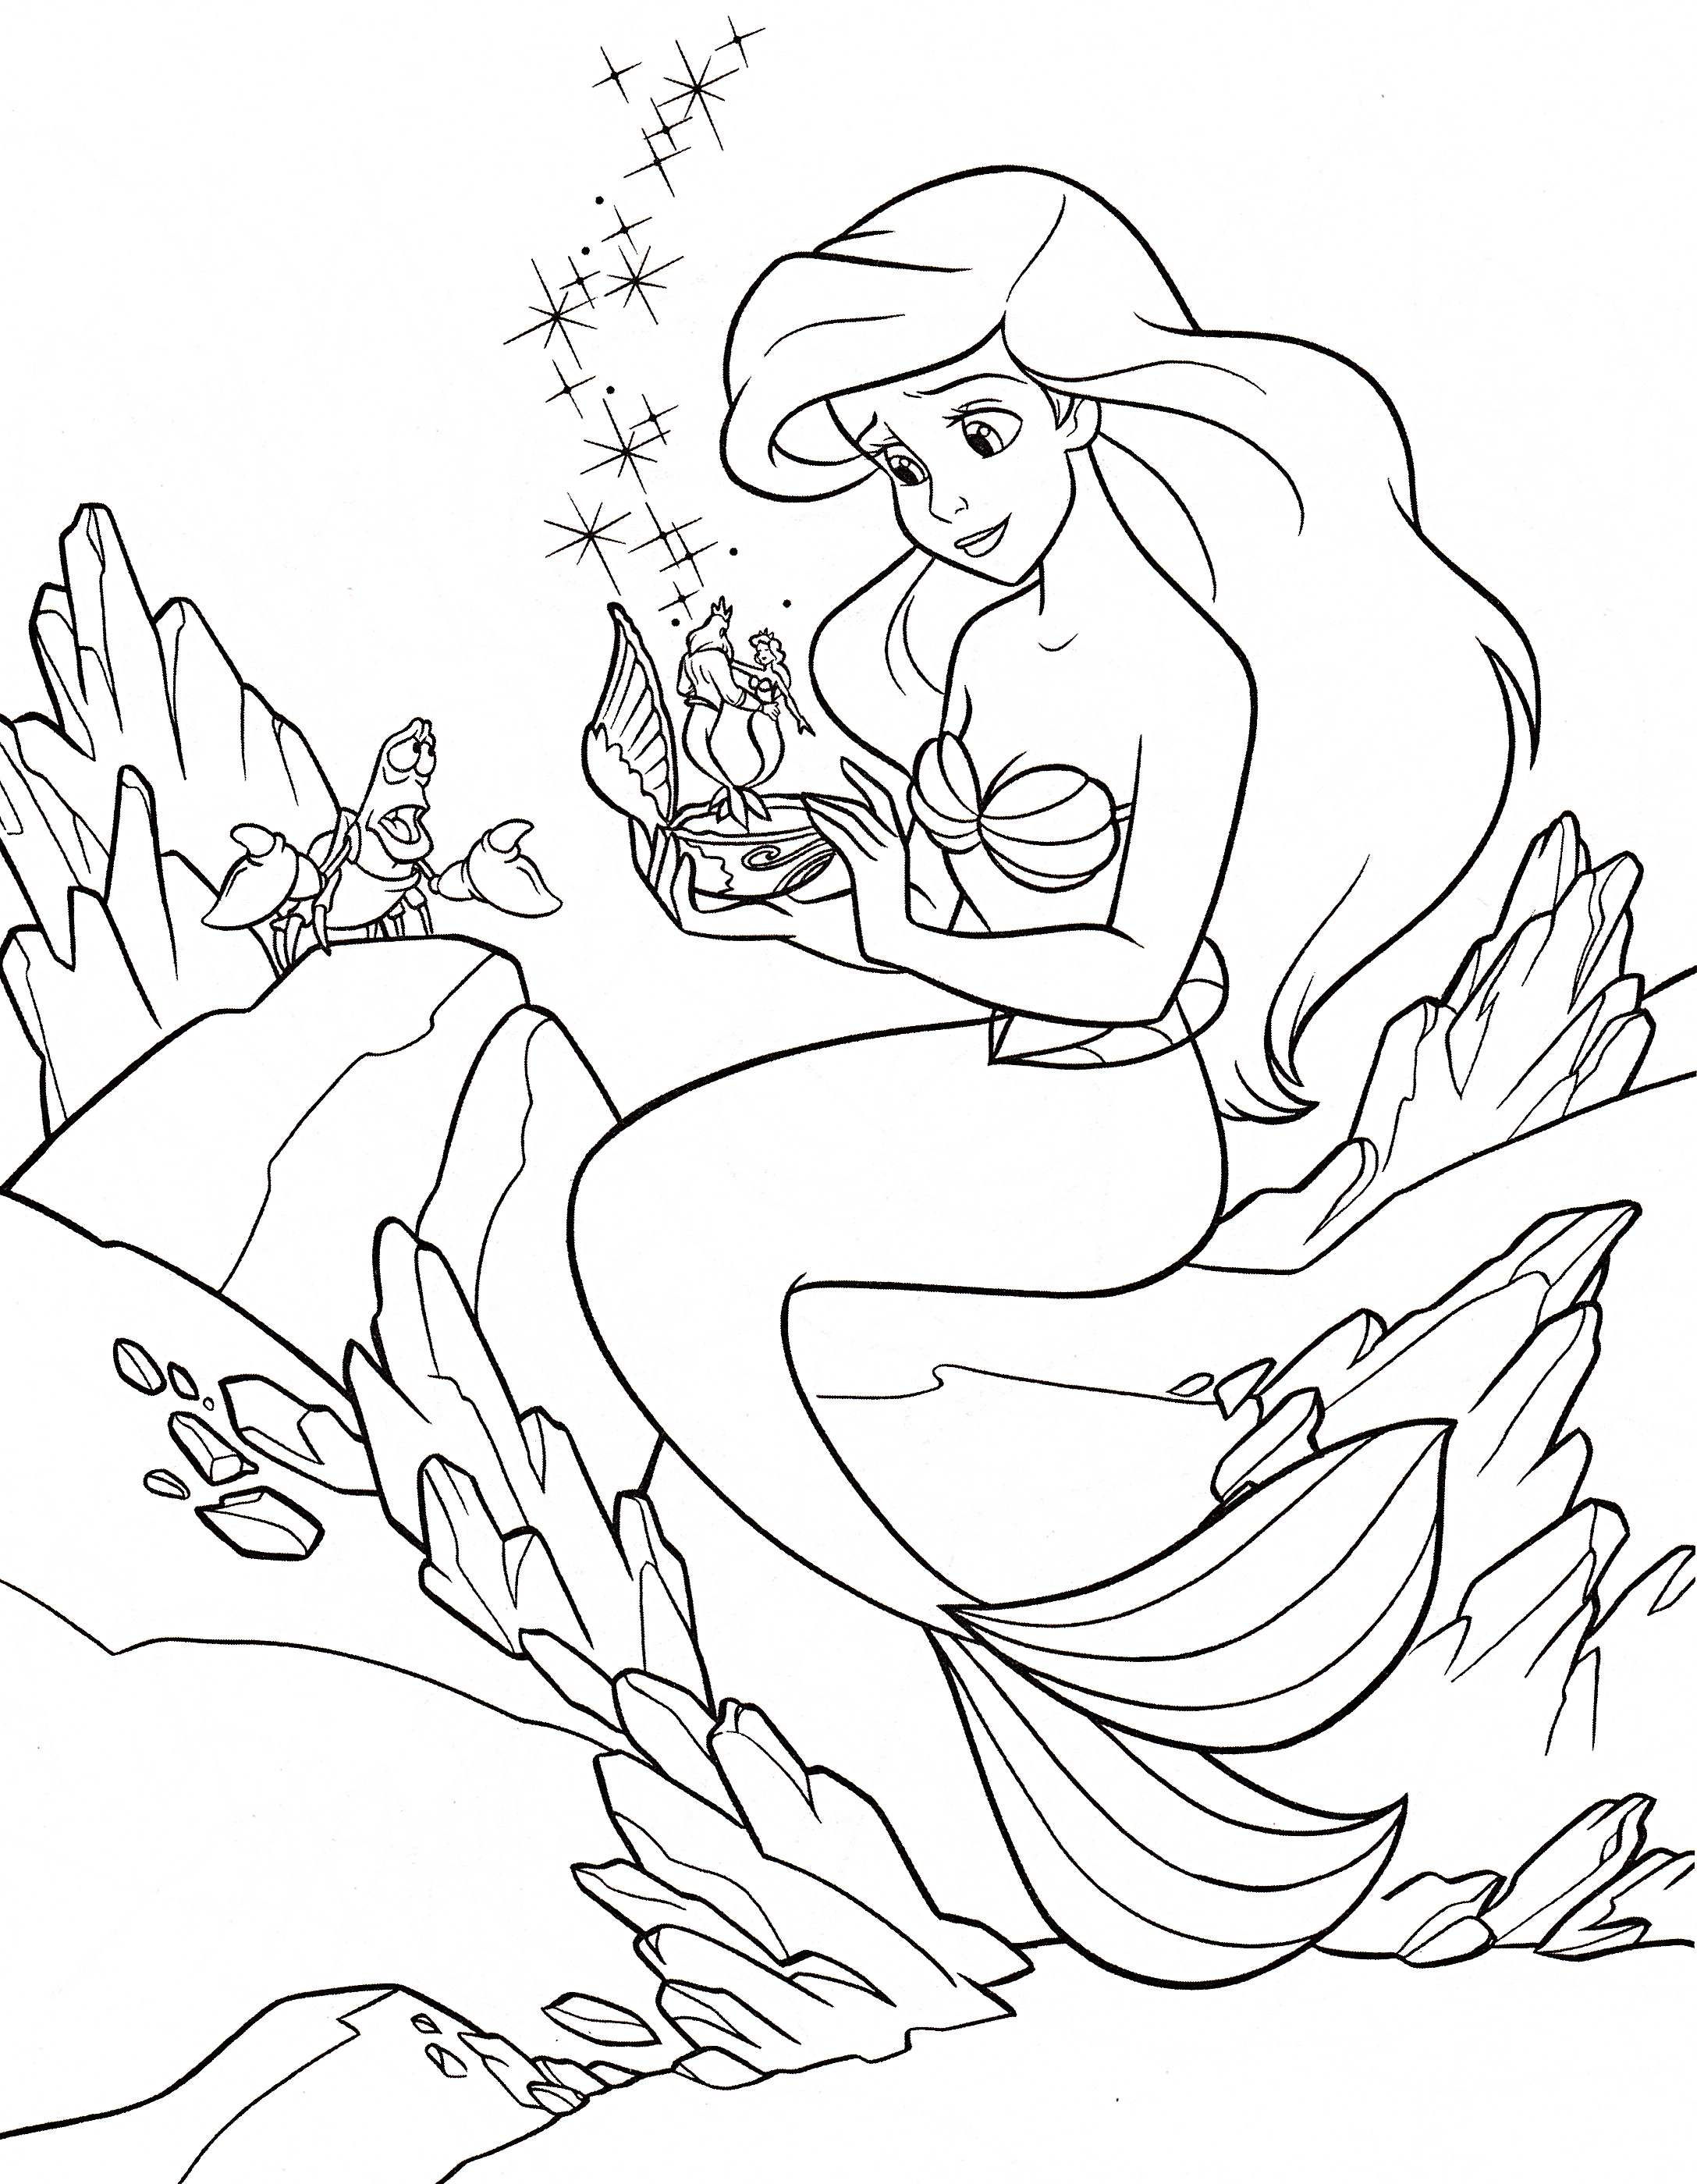 Walt Disney Coloring Pages - Sebastian & Princess Ariel